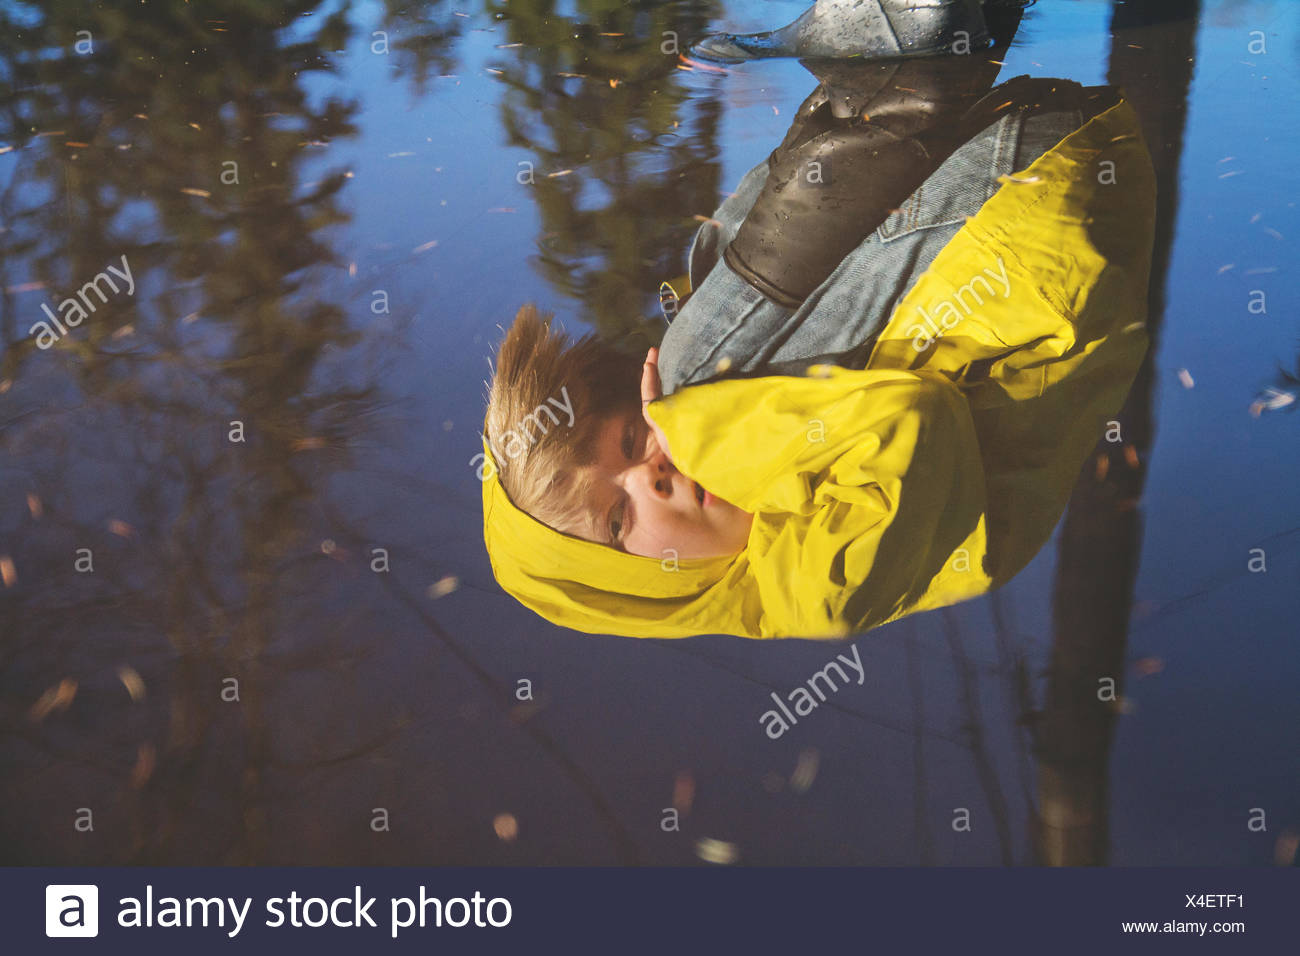 Reflection of boy in rain coat looking into puddle of water - Stock Image